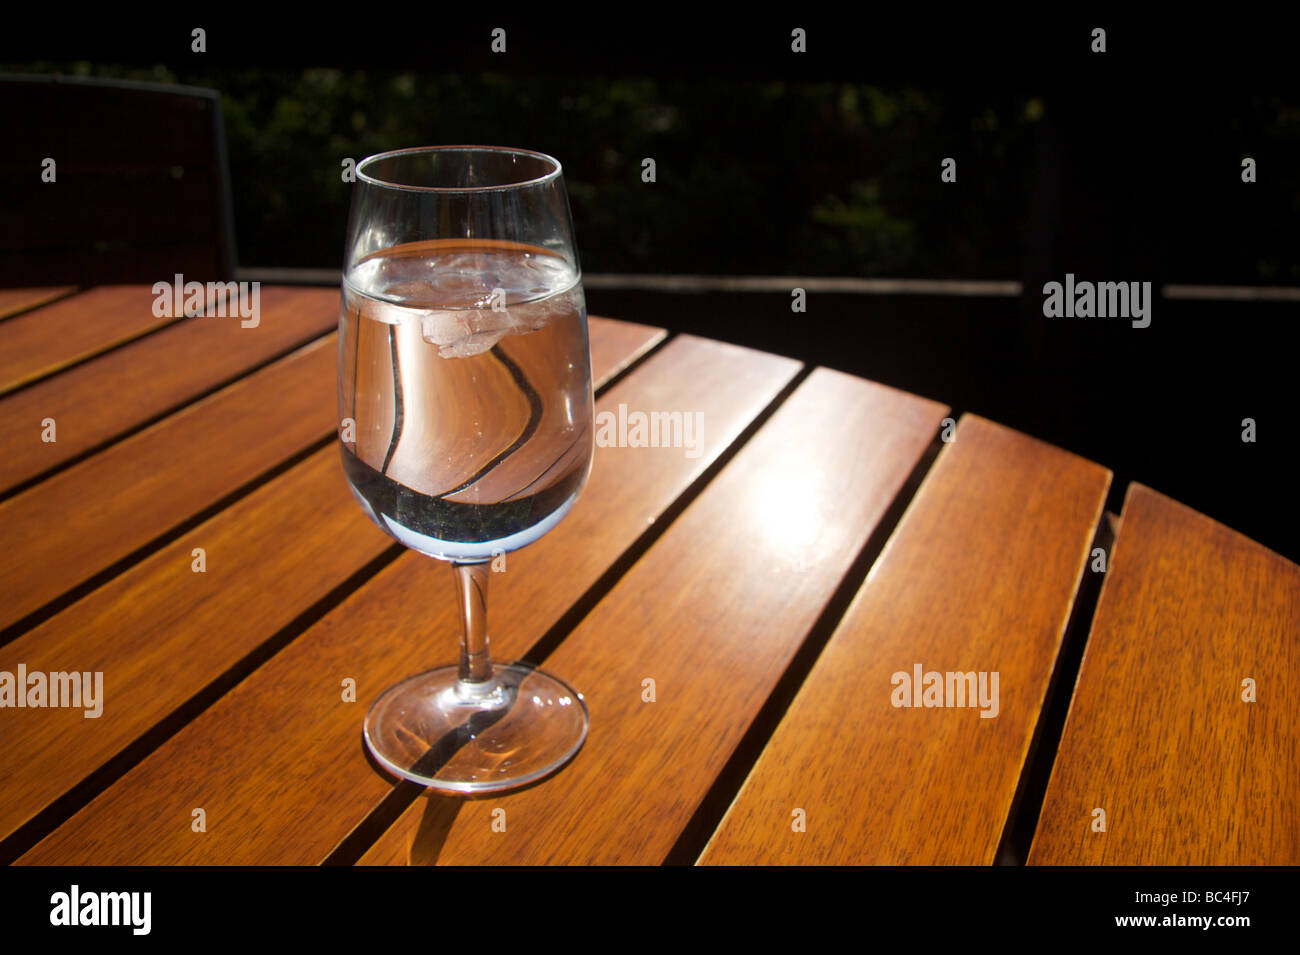 Stemmed glass of water on a wood slat table - Stock Image